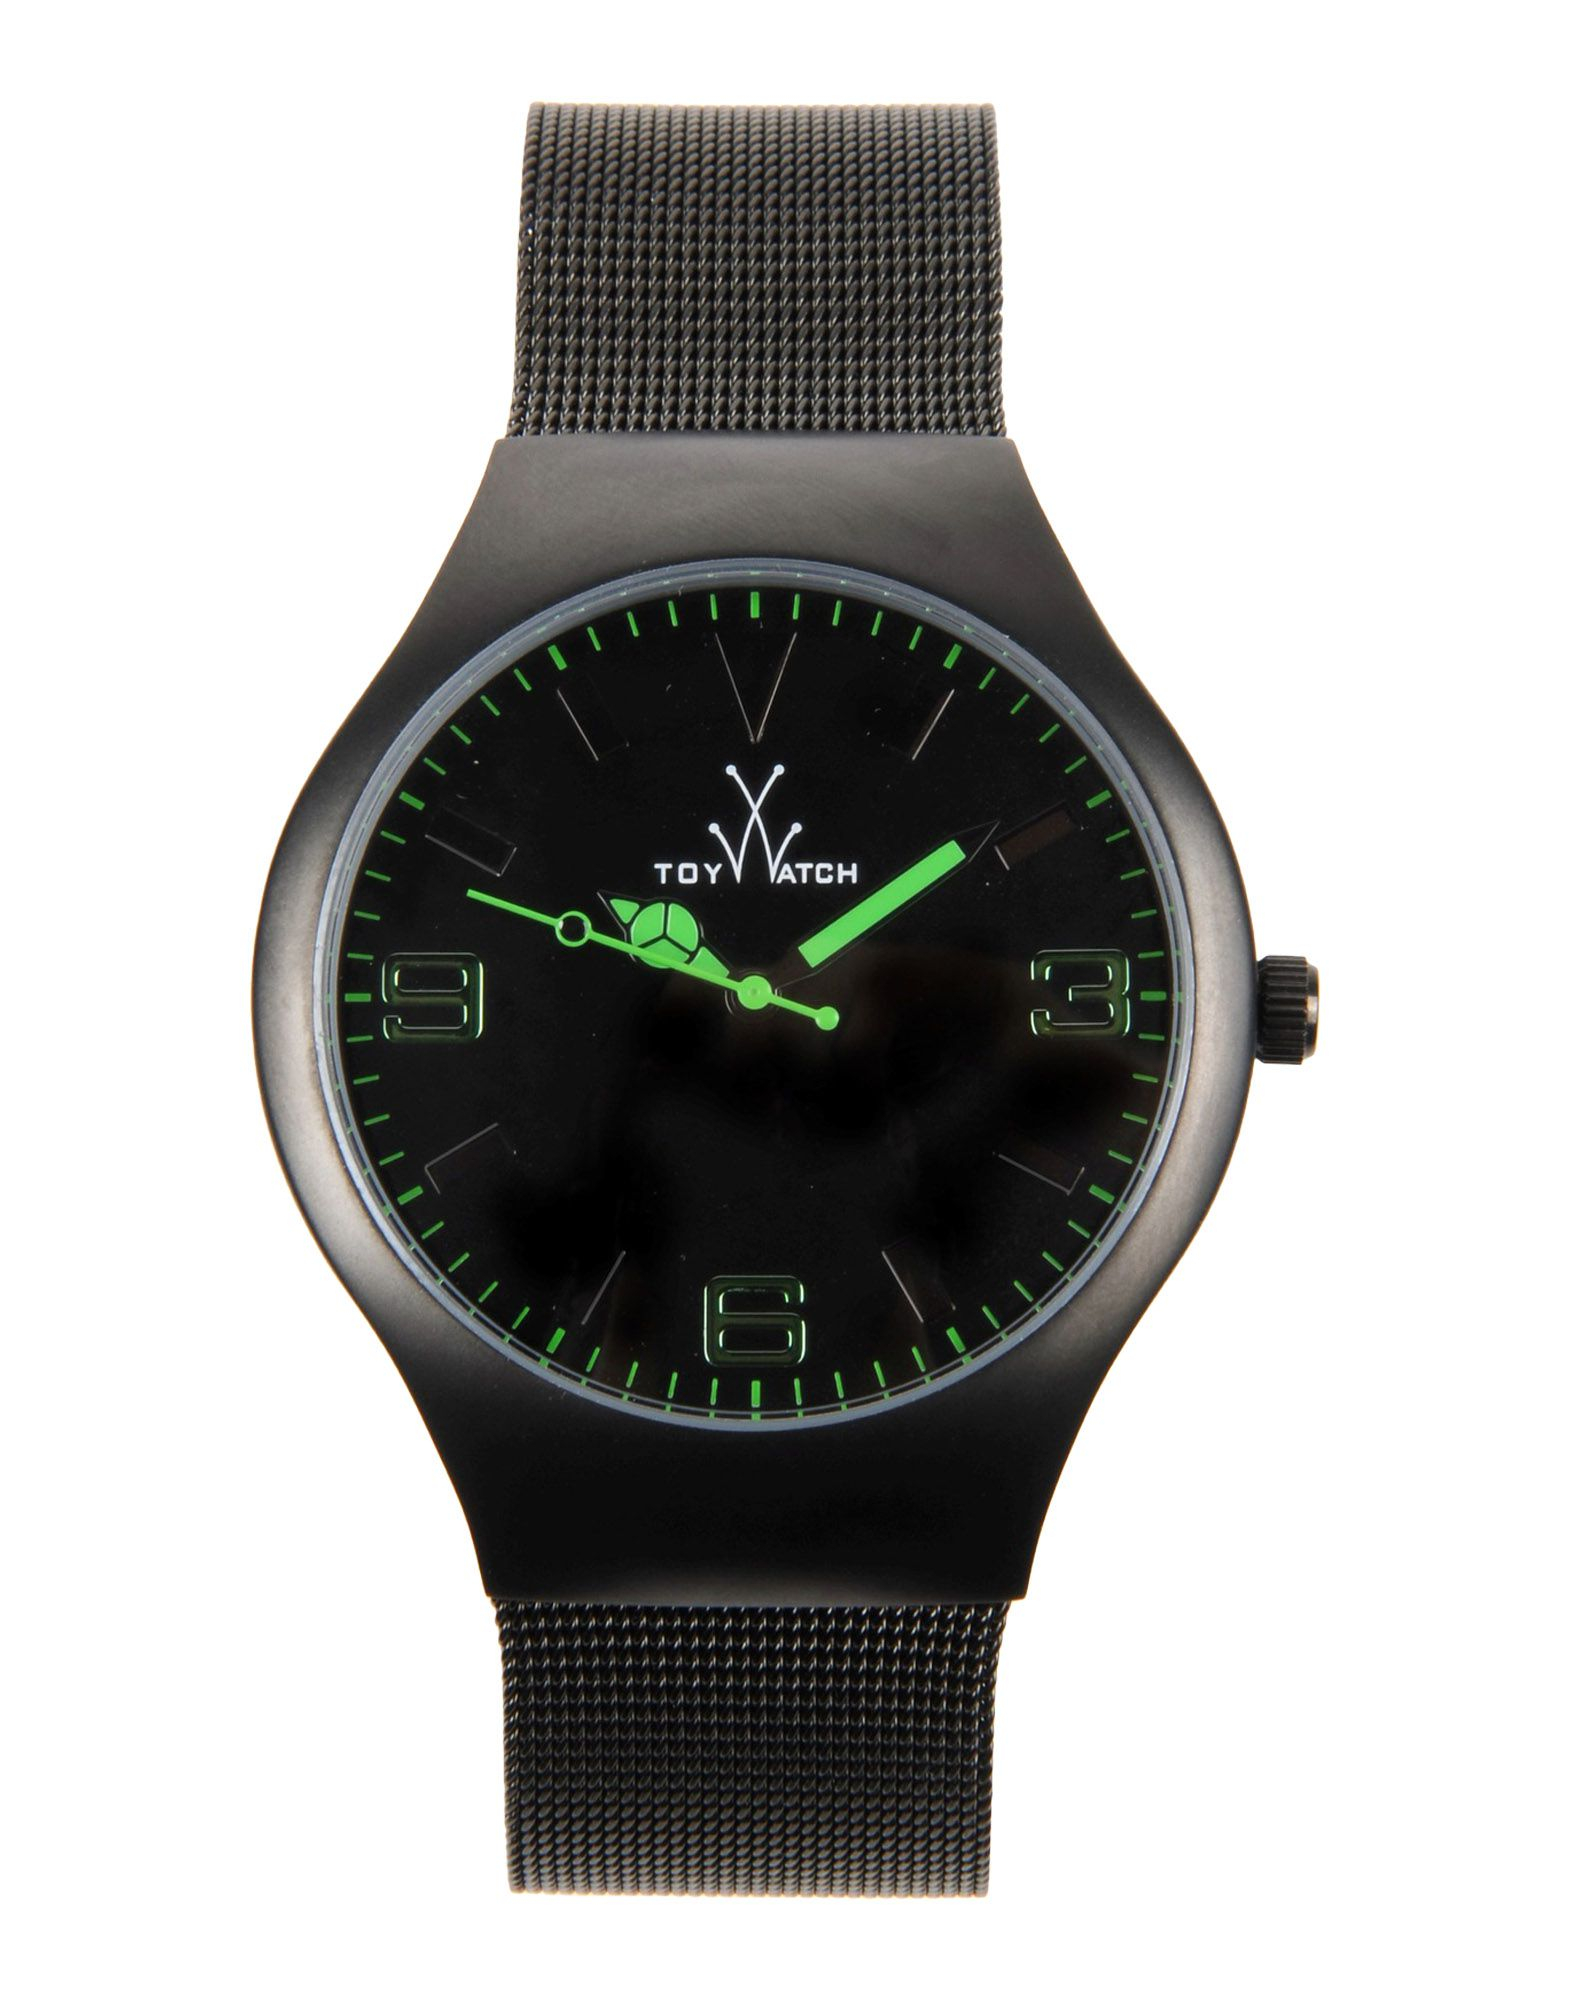 Black Wrist Watches Related on vip7fps.tk: black watch black watches ceramic watches for men Best Buy customers often prefer the following products when searching for. Black Wrist Watches.. Browse the top-ranked list of. Black Wrist Watches below along with associated reviews and opinions.